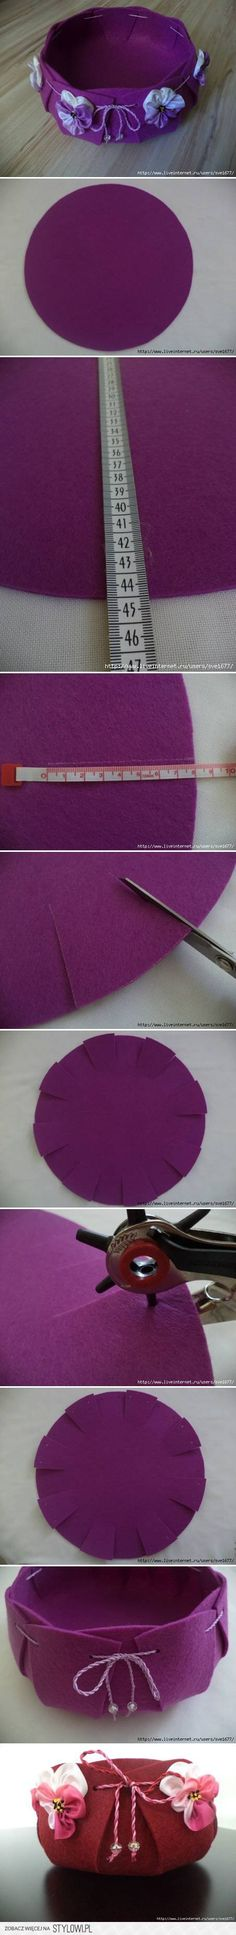 DIY Beautiful Felt Basket DIY Projects | UsefulDIY.com na Stylowi.pl